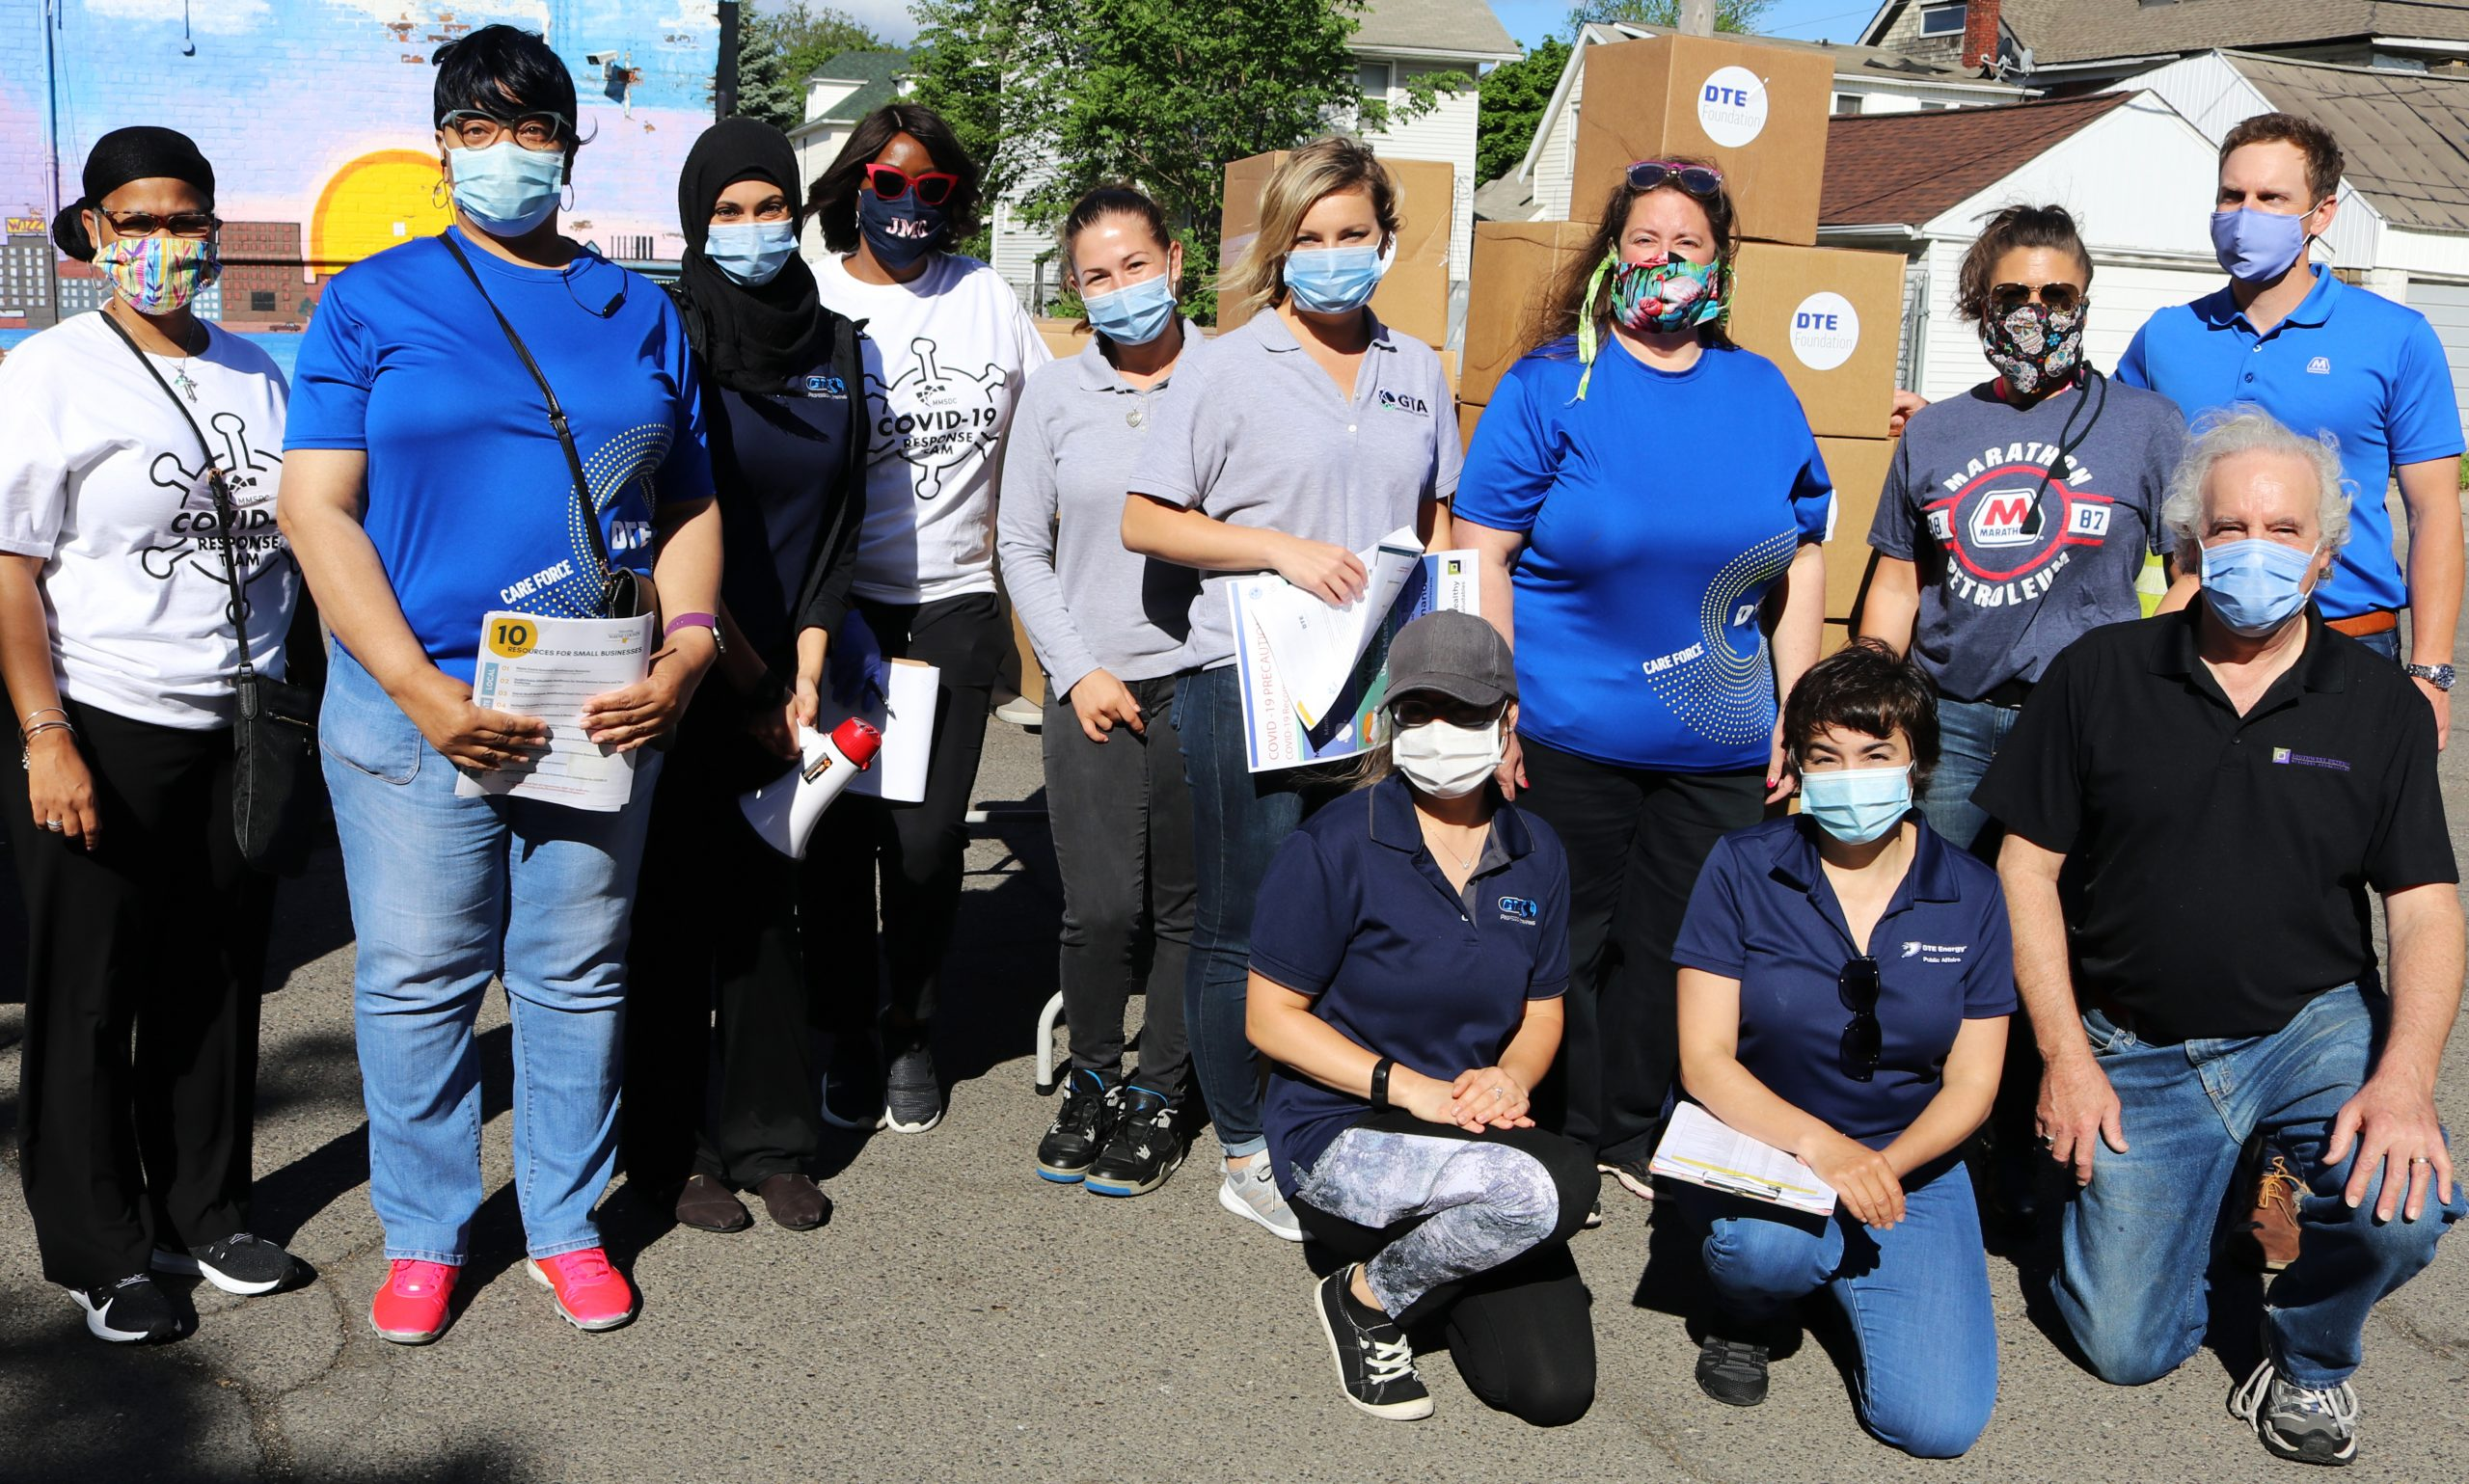 Successful Delivery of Free PPE in SW Detroit